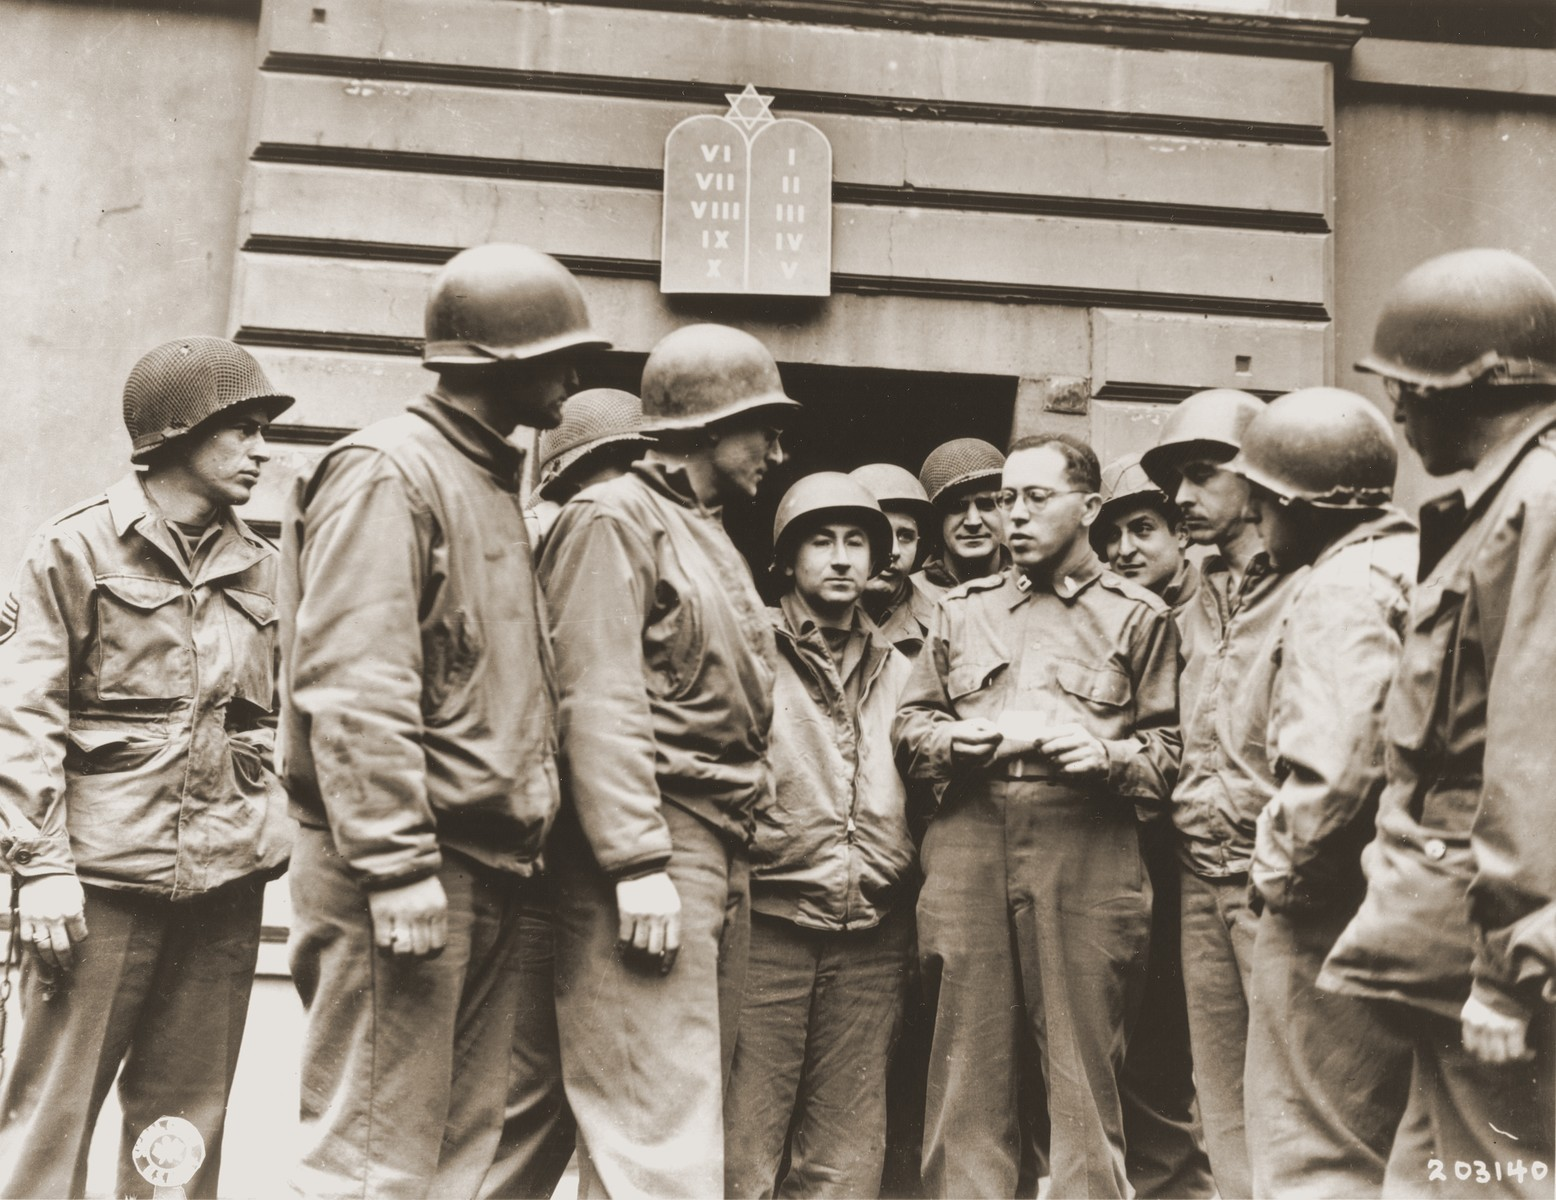 American Army chaplain Rabbi Samuel Blinder converses with a group of Jewish soldiers outside a synagogue in Germany.